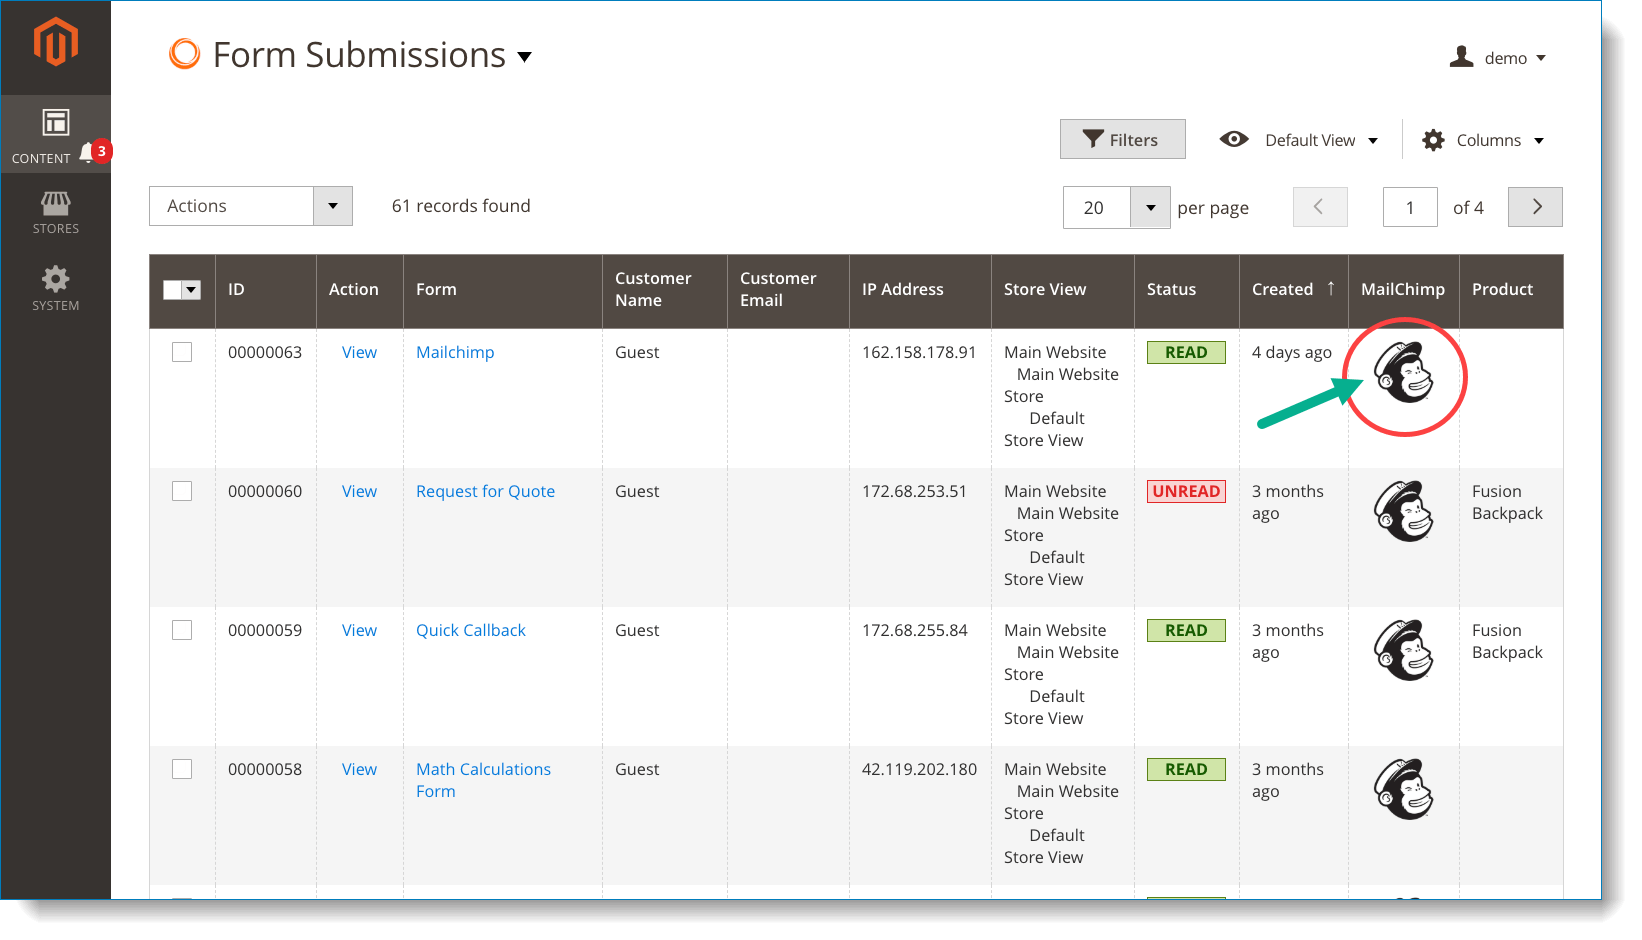 MailChimp | Check whether subscribers were added to MailChimp list